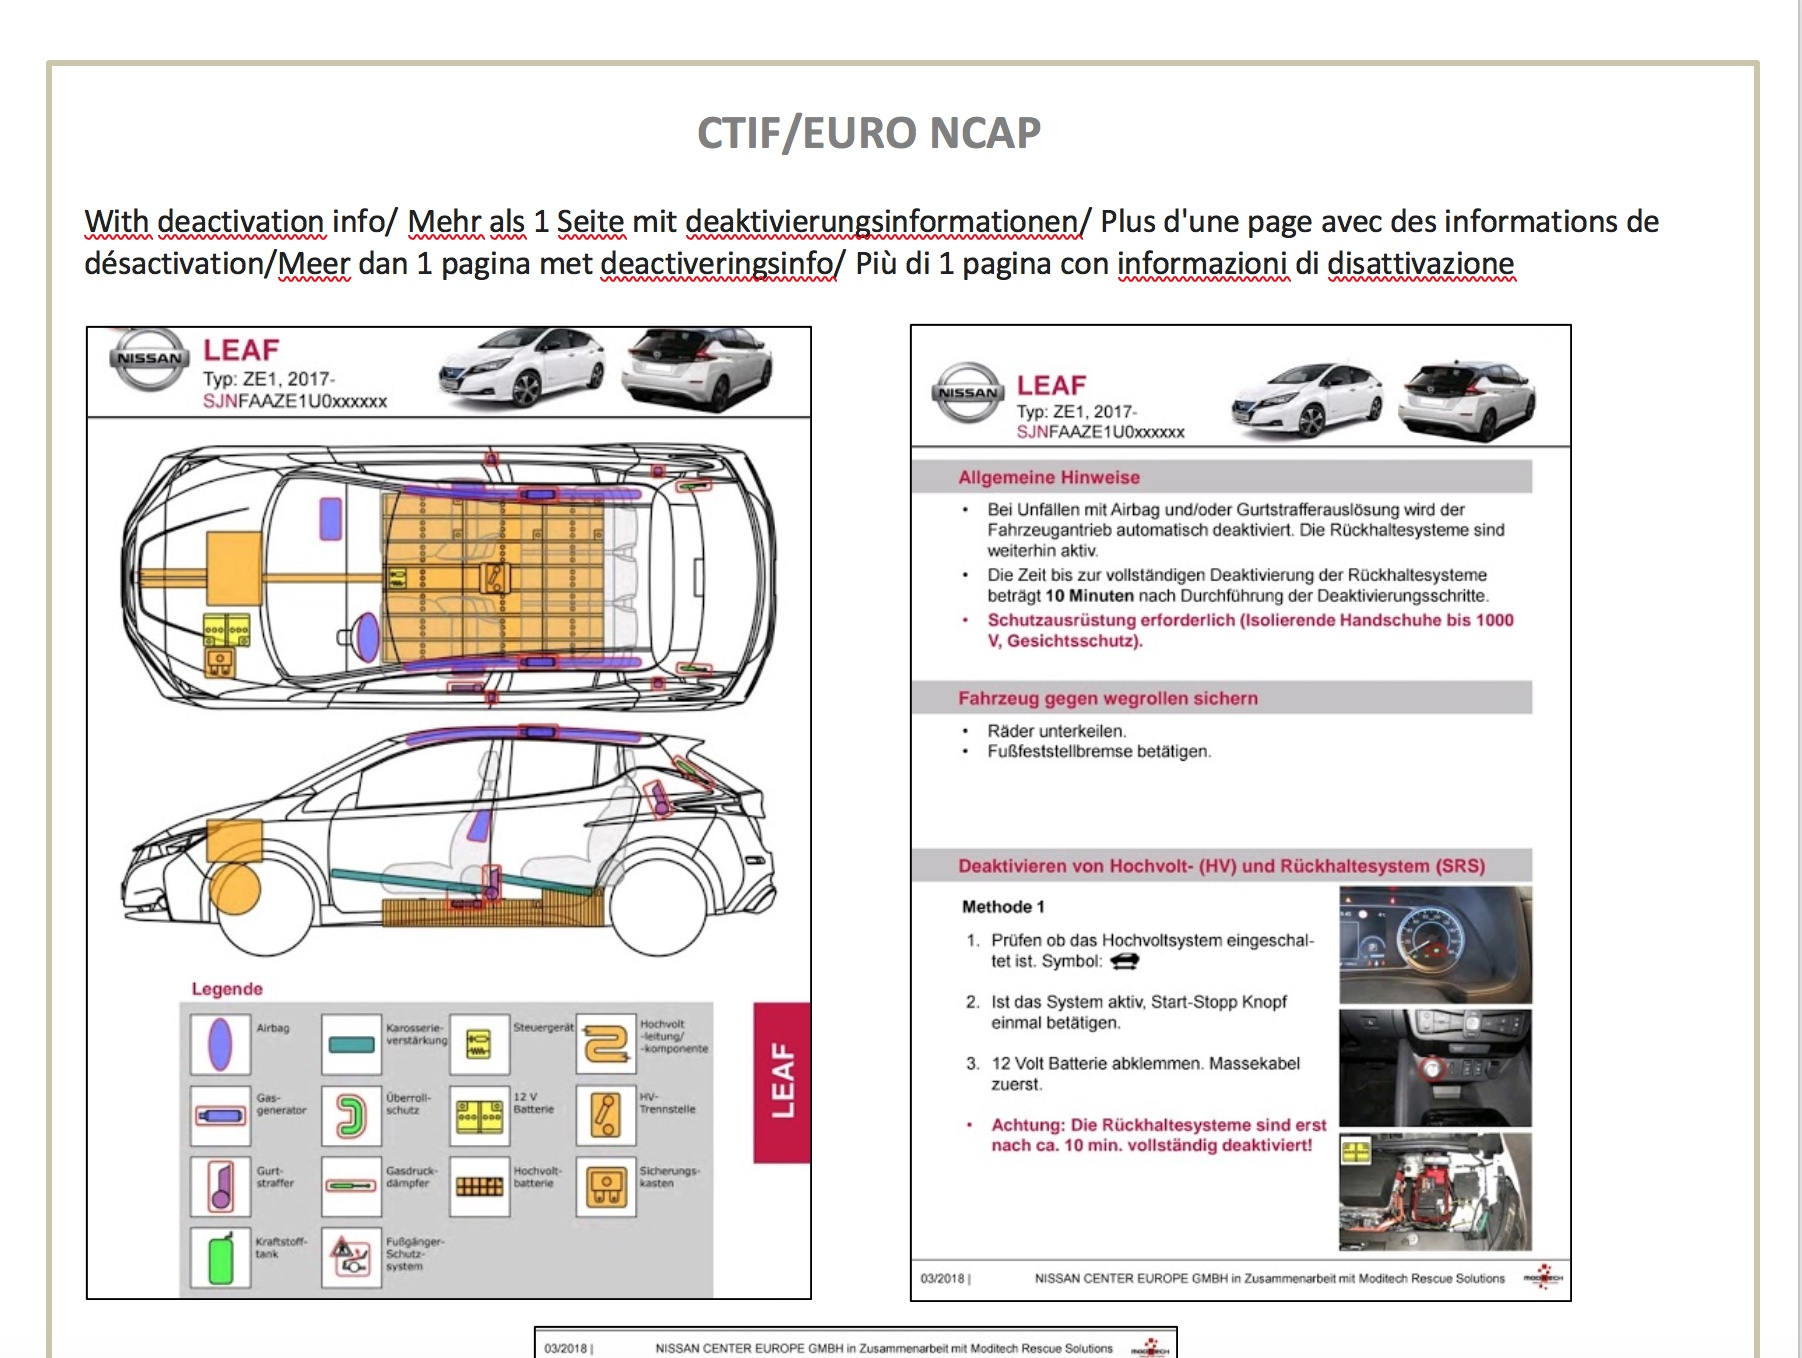 A screen shot from the rescue sheet of a Nissan Leaf.